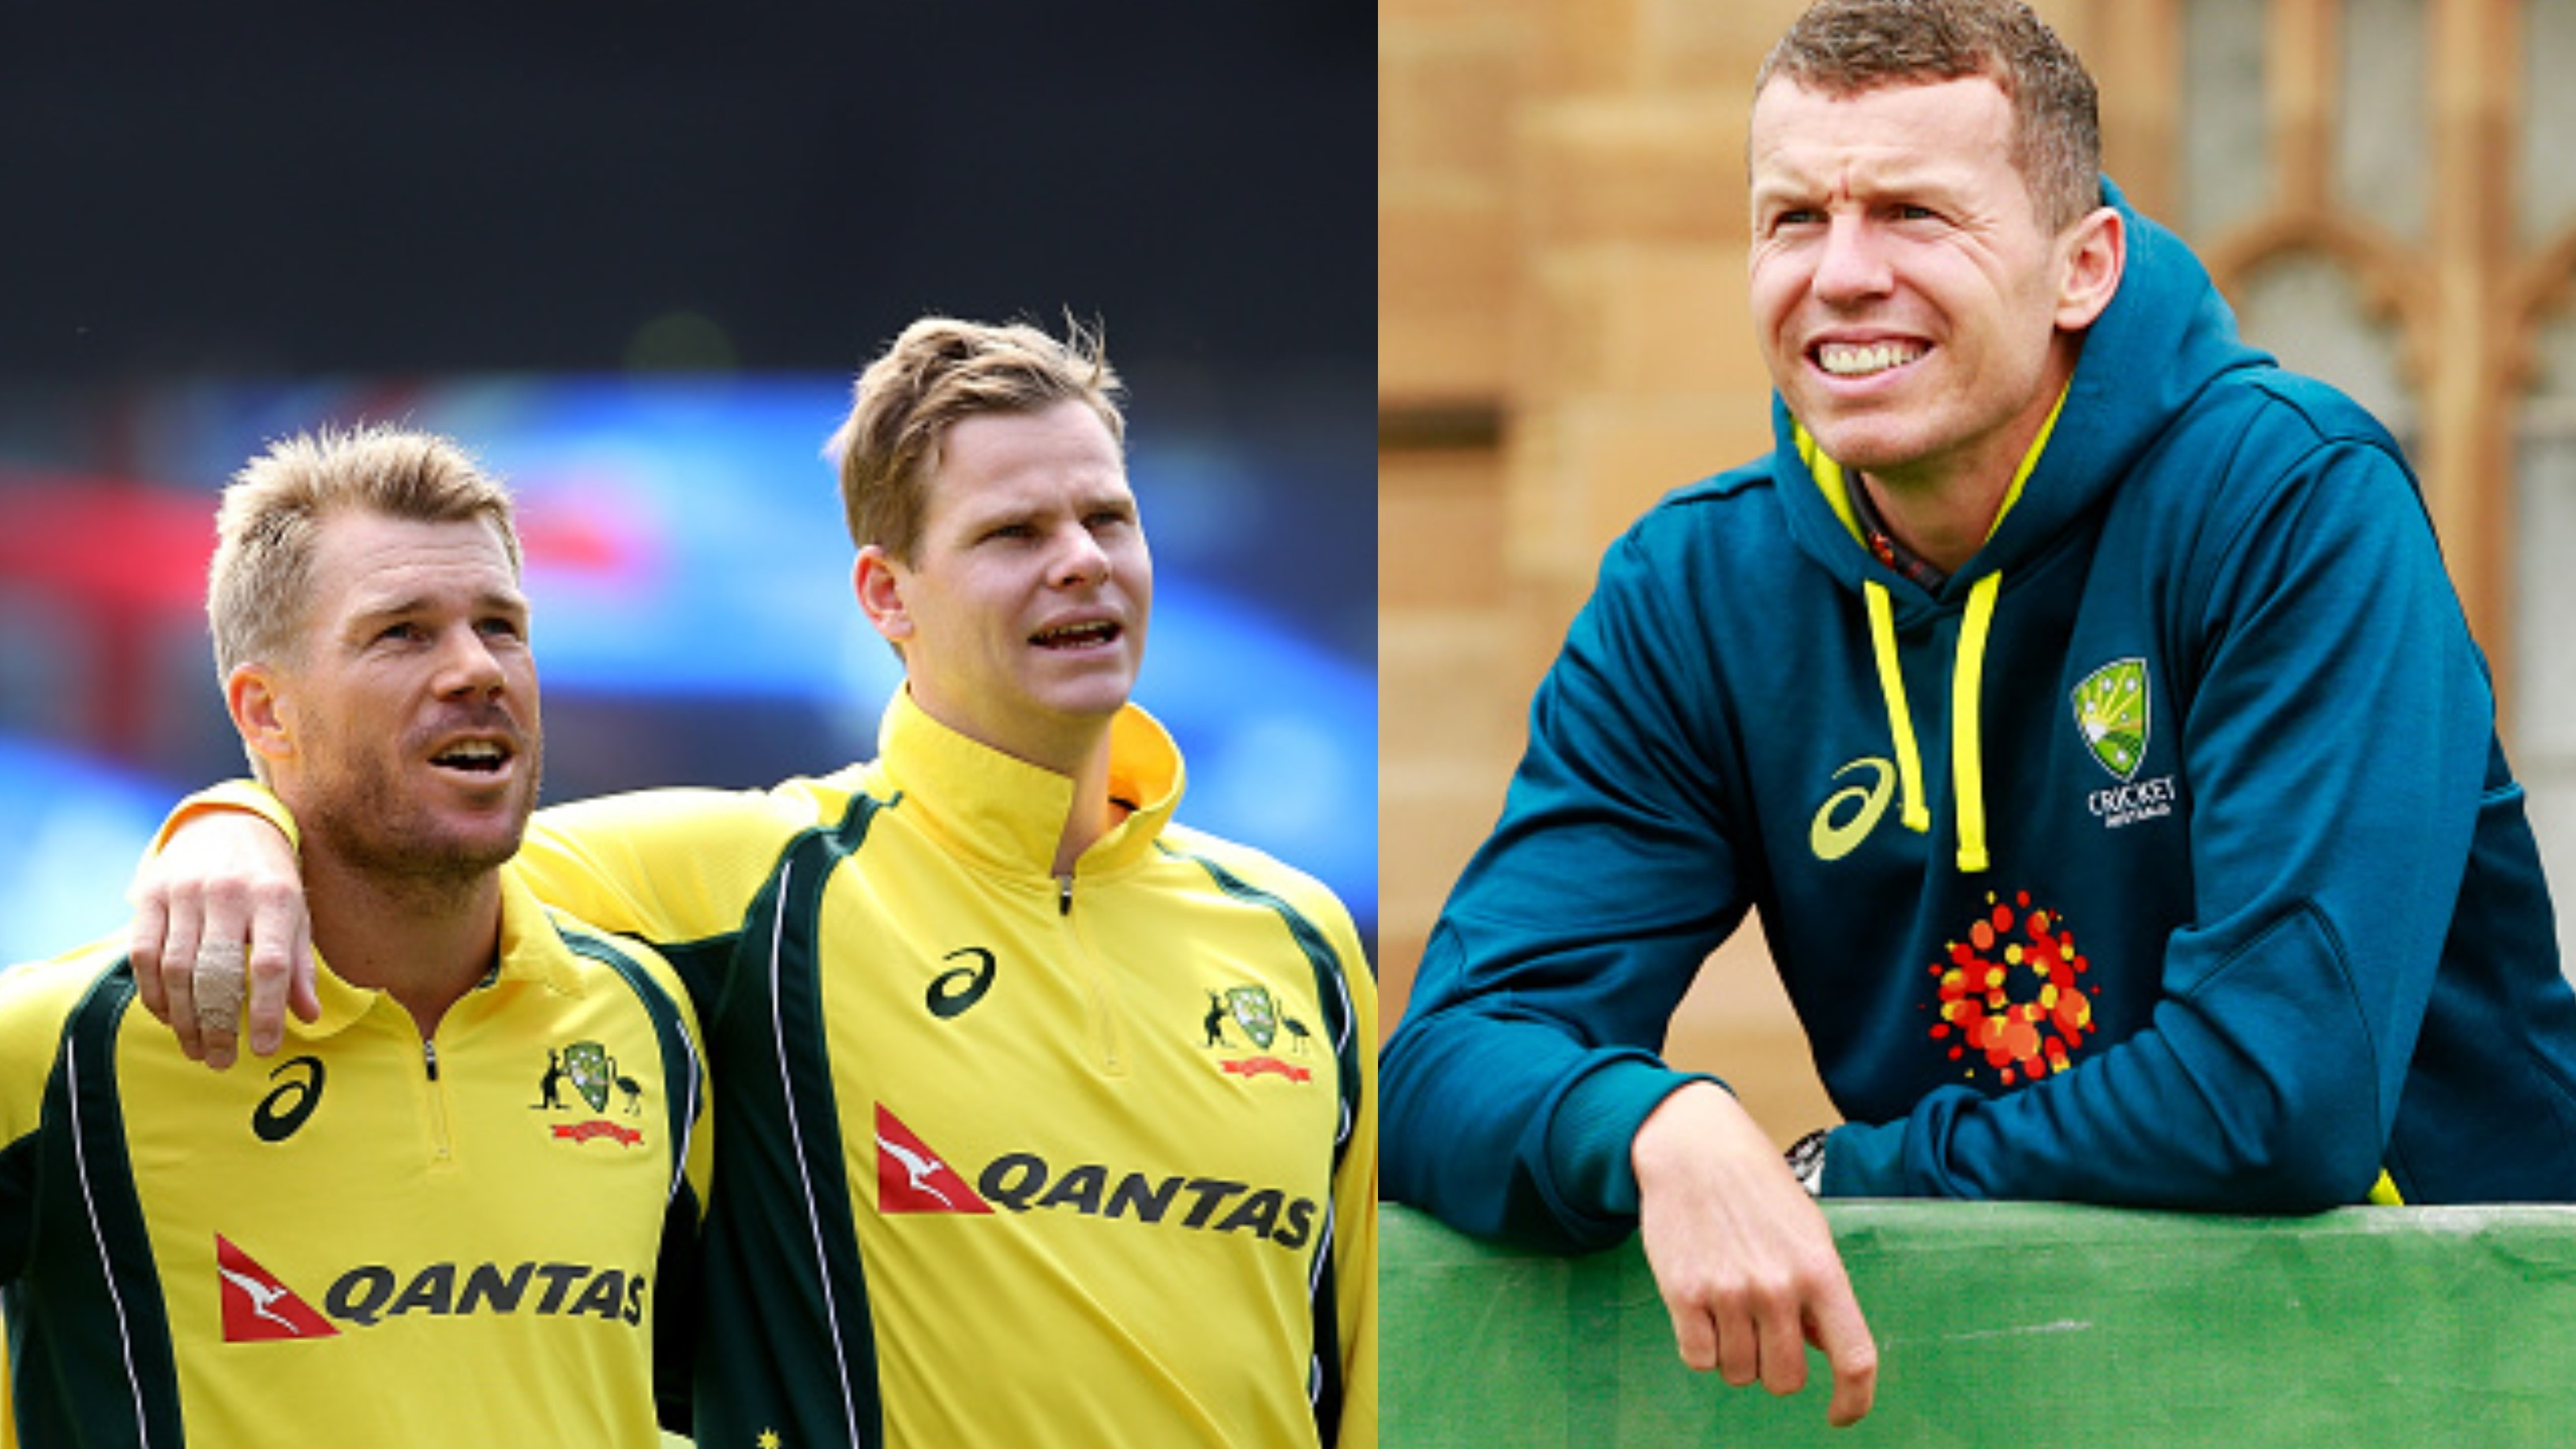 CWC 2019: Targeting Smith and Warner over ball-tampering scandal will backfire during World Cup, says Siddle